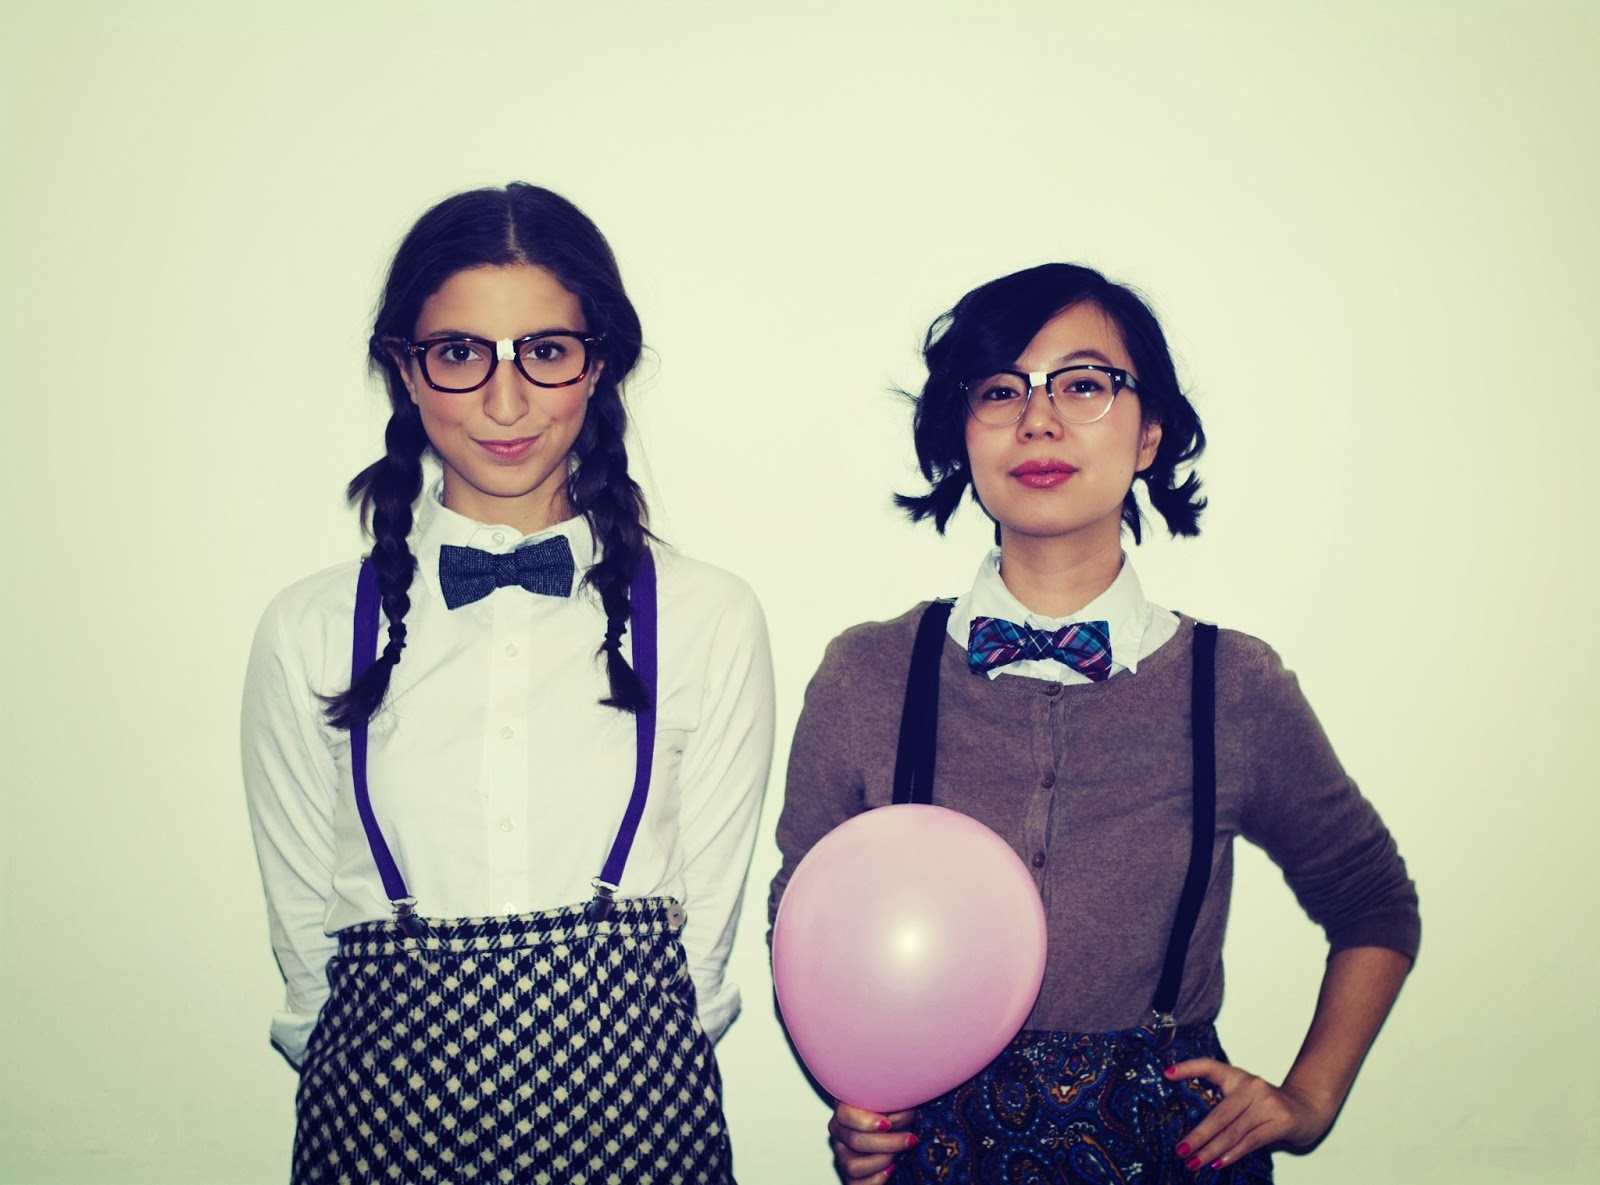 halloween nerds glasses braids cardigan suspenders bow ties paisley pants skirt